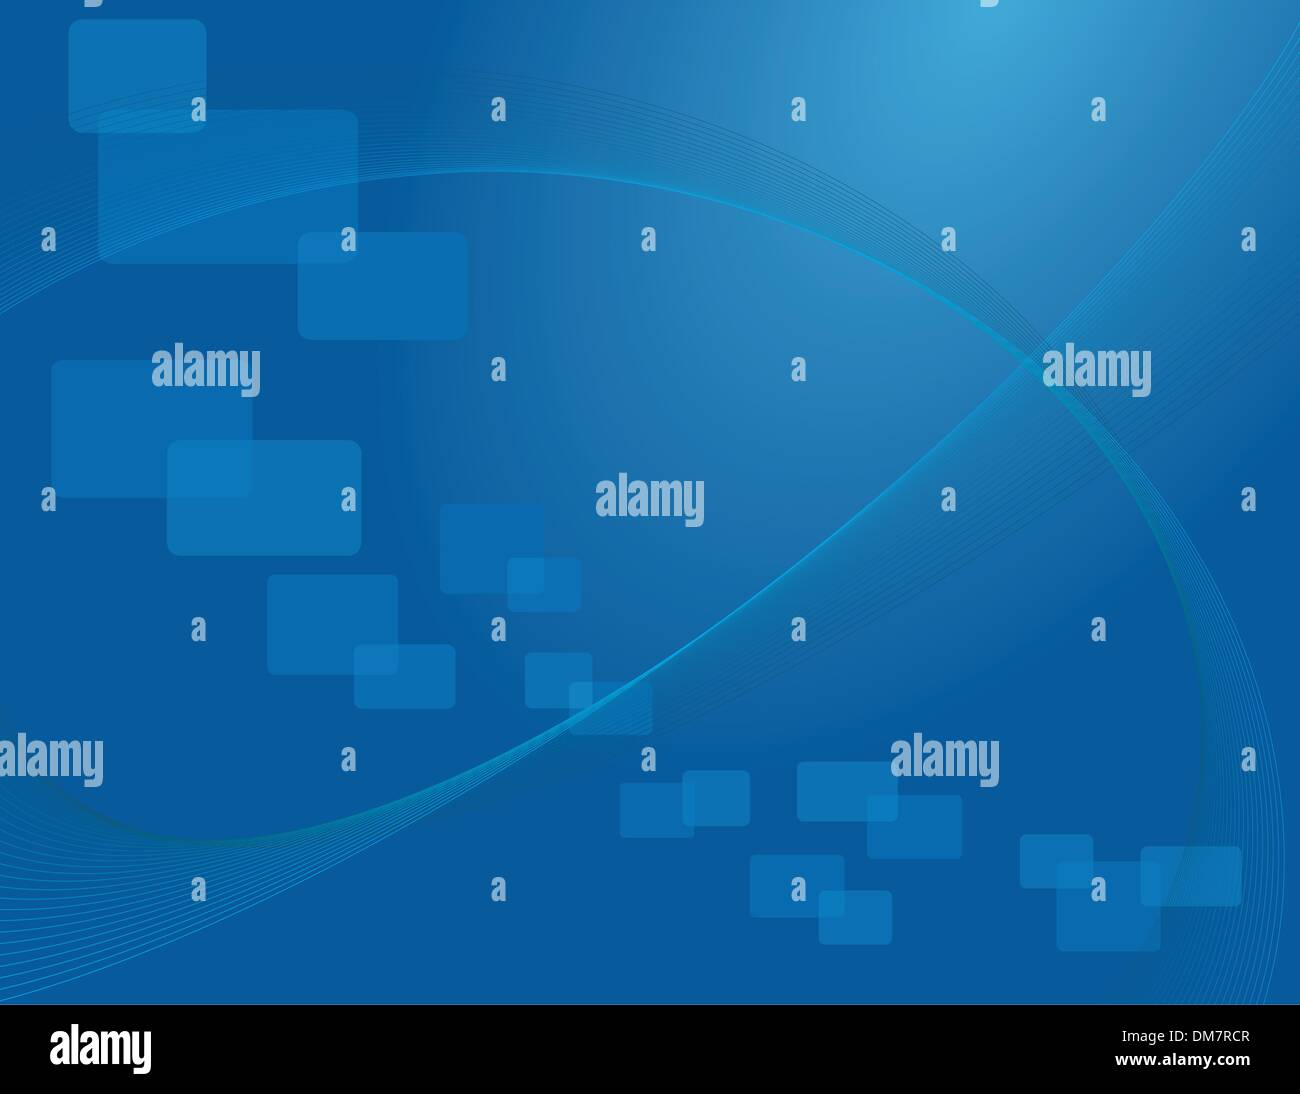 Abstract wavy background - Stock Image